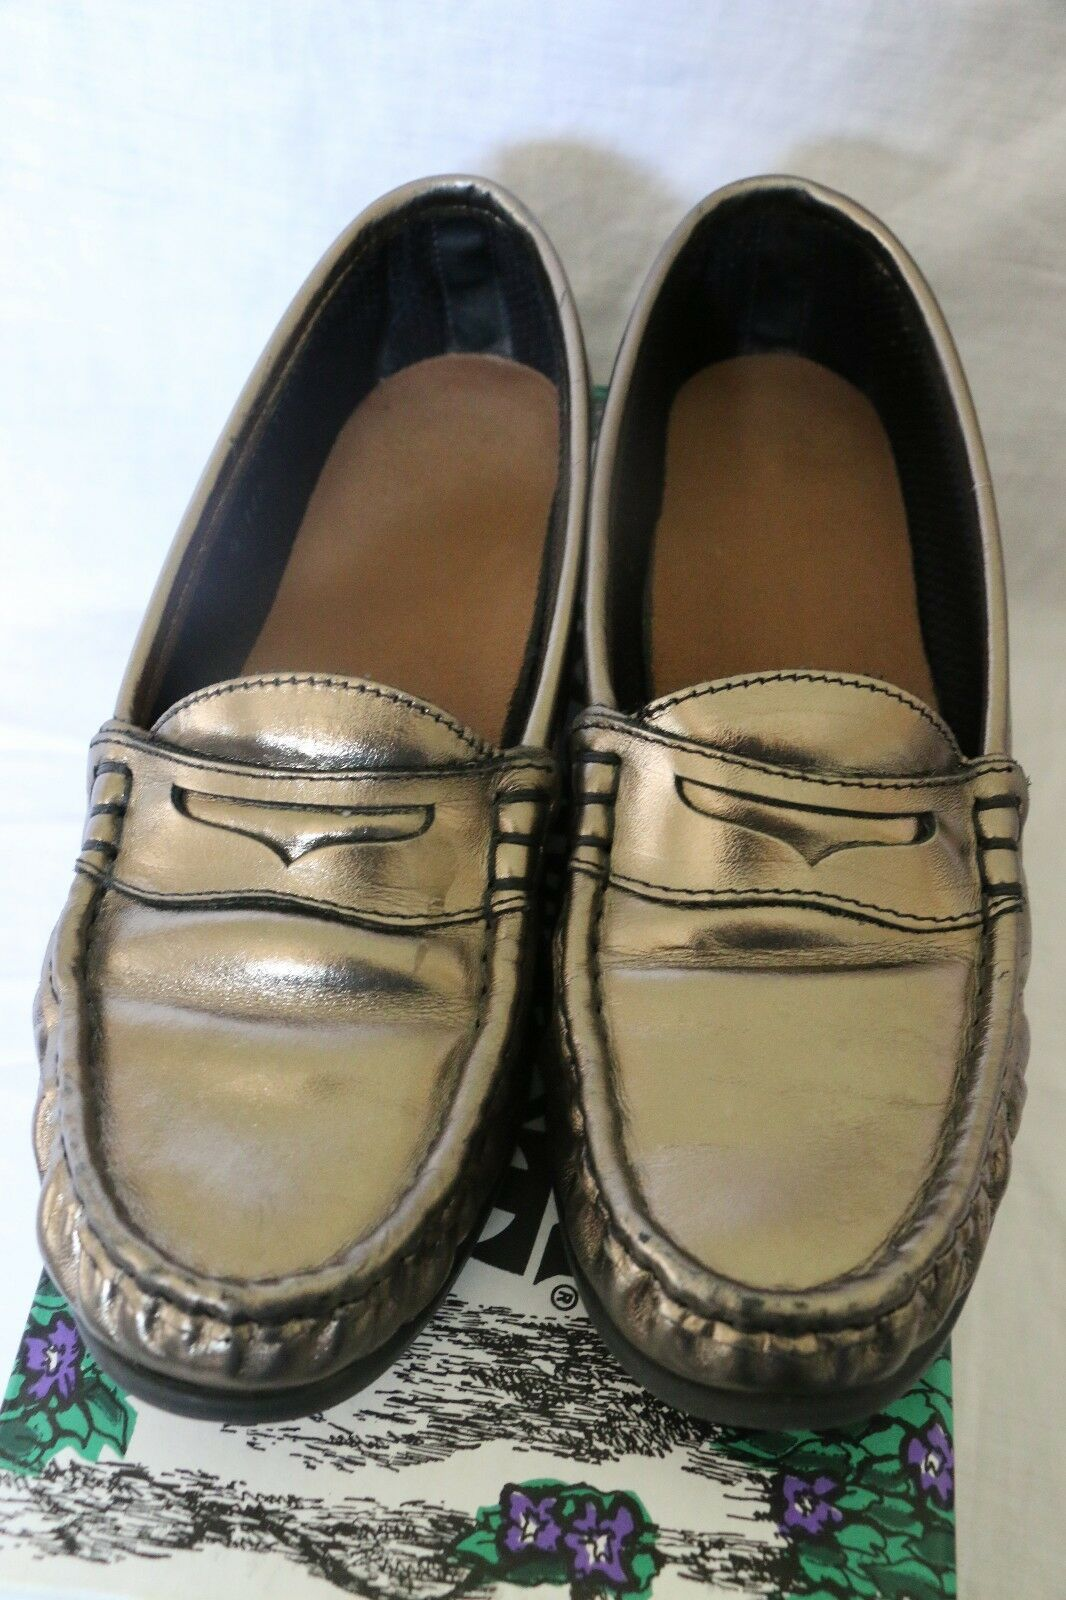 Women's Southern Comfort Metallic Loafers shoes- Size 7-1 2 M - Pewter